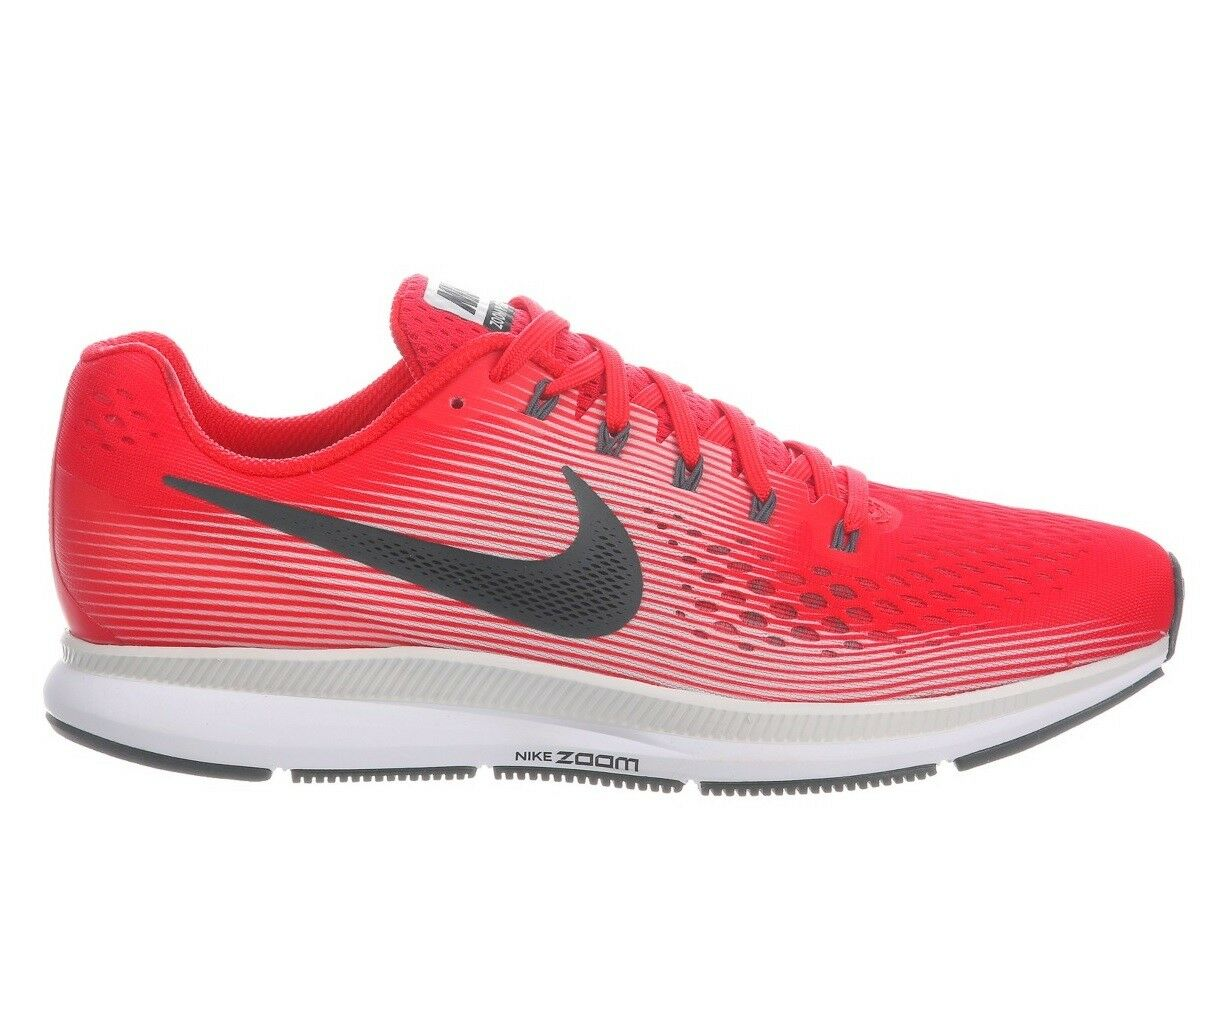 Nike Air Zoom Pegasus 34 Mens 880555-602 Speed Red Mesh Running Shoes Comfortable The most popular shoes for men and women